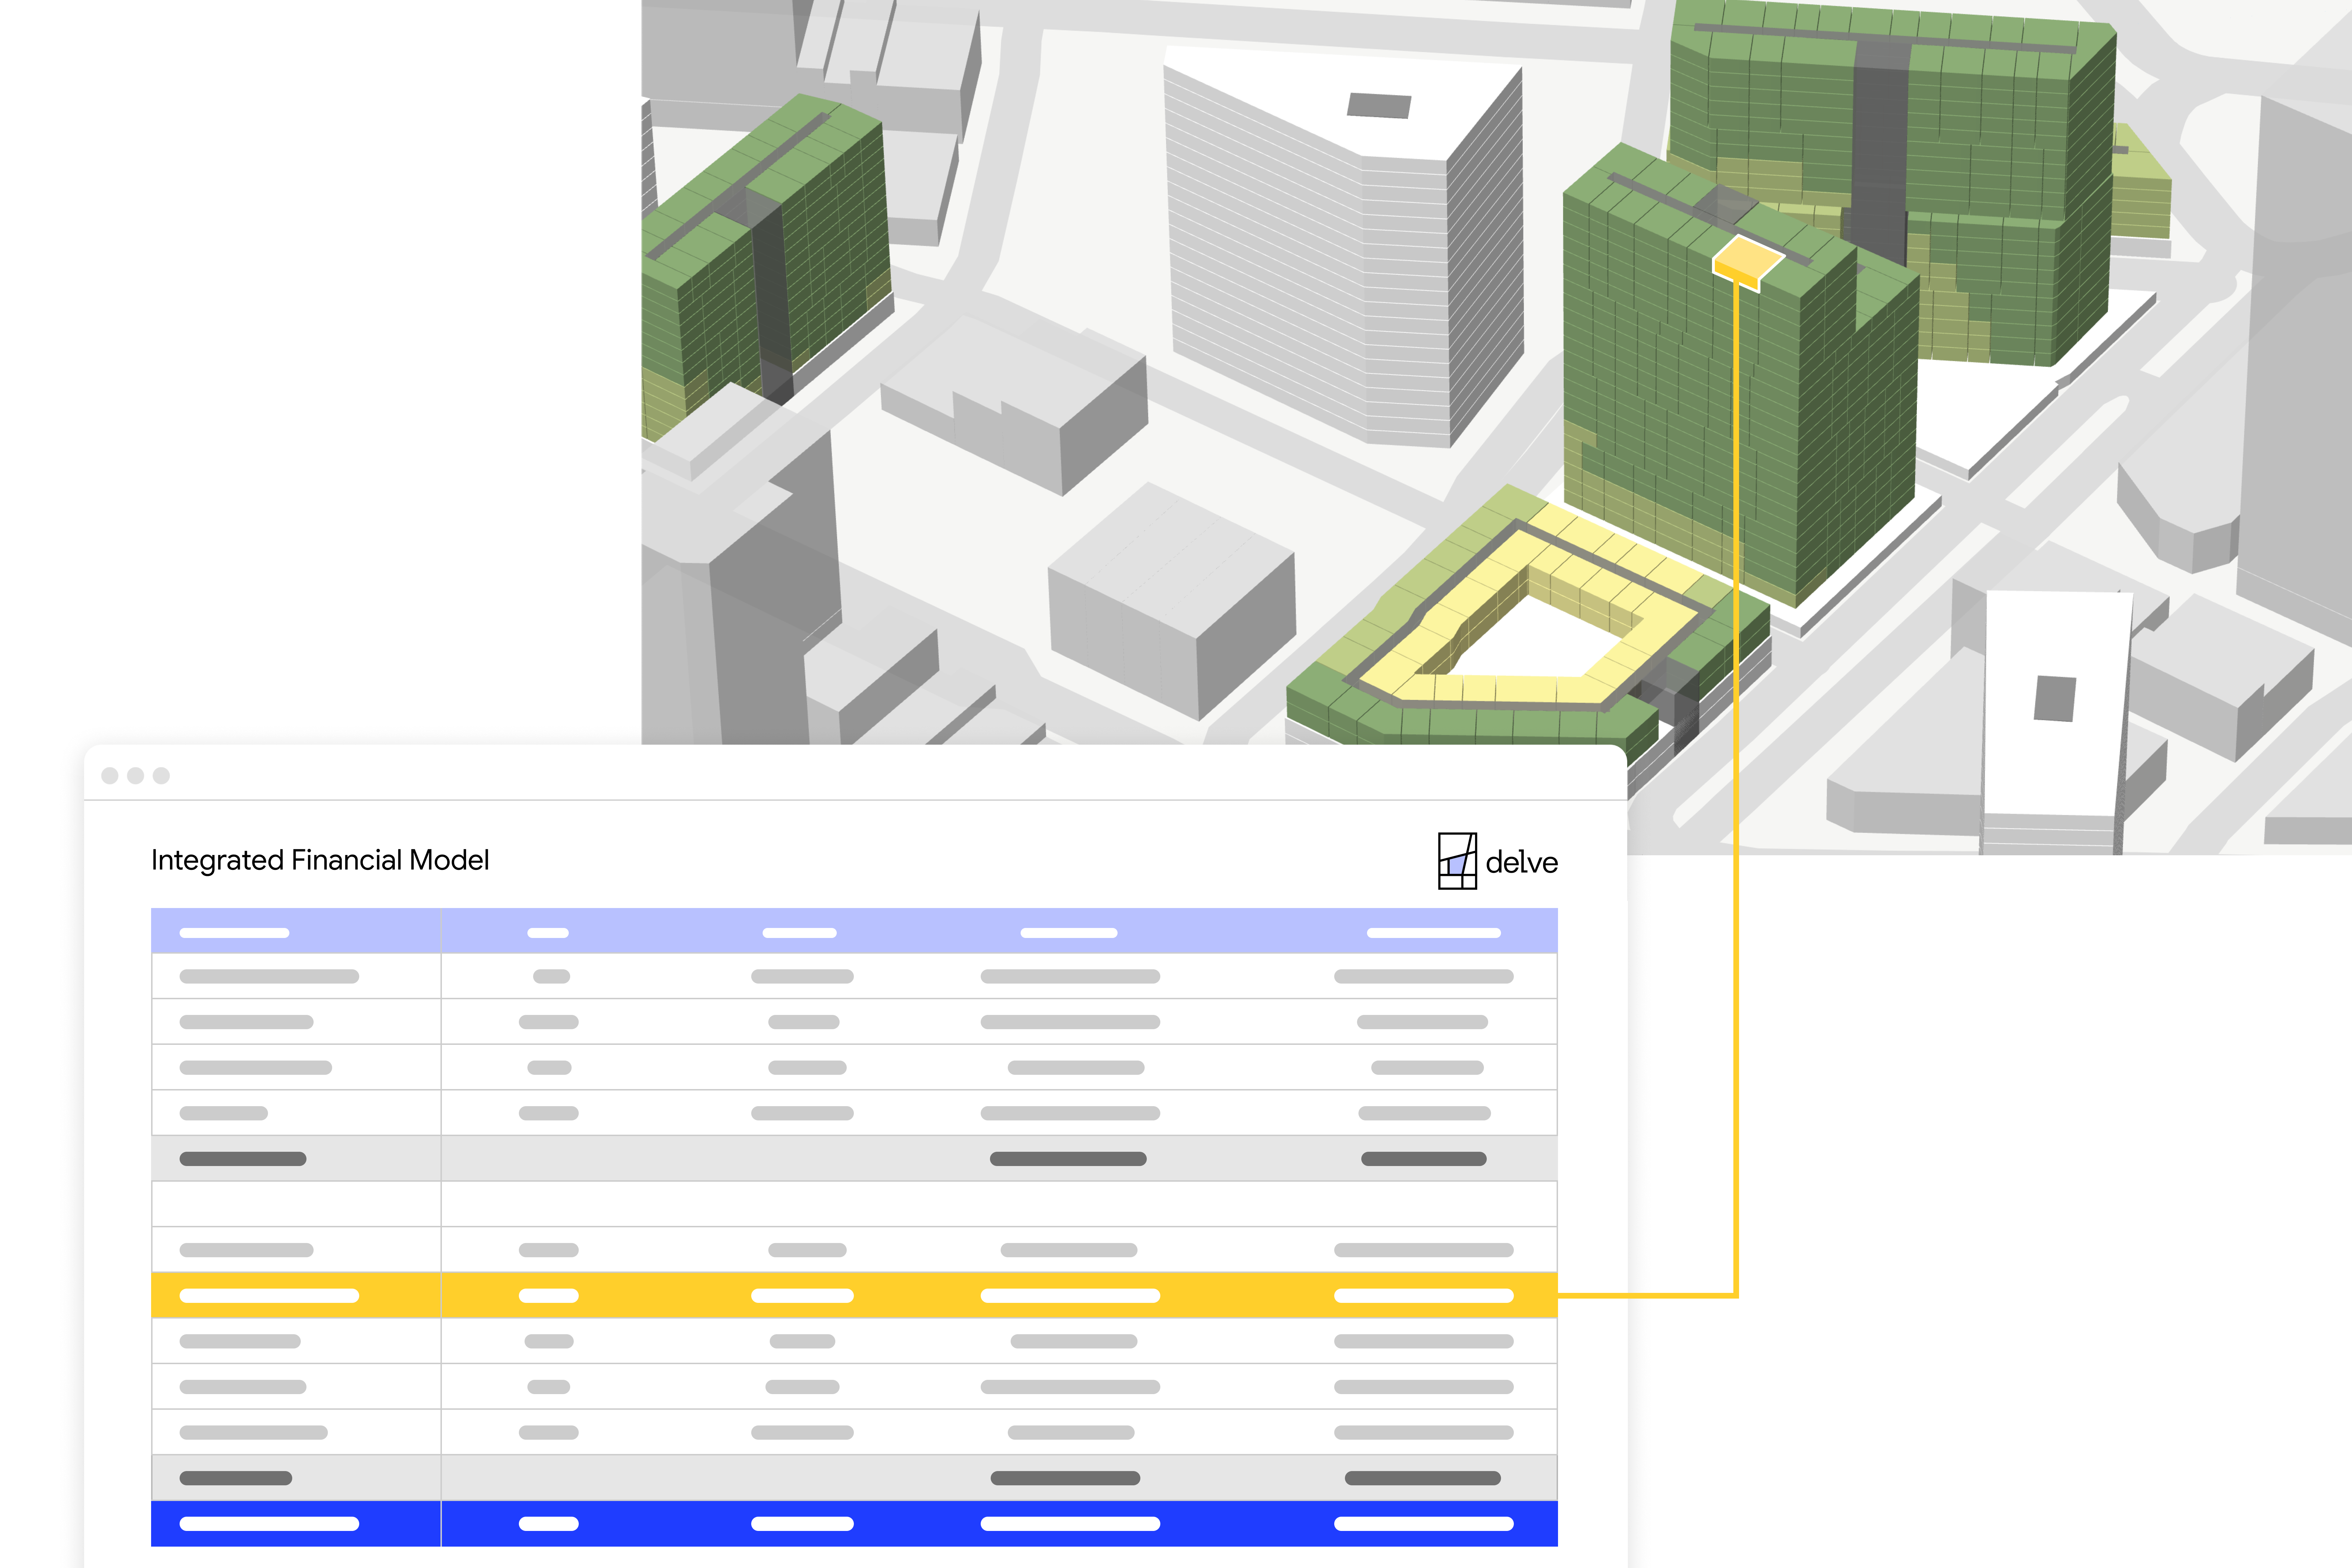 An image pair showing the Delve user interface.